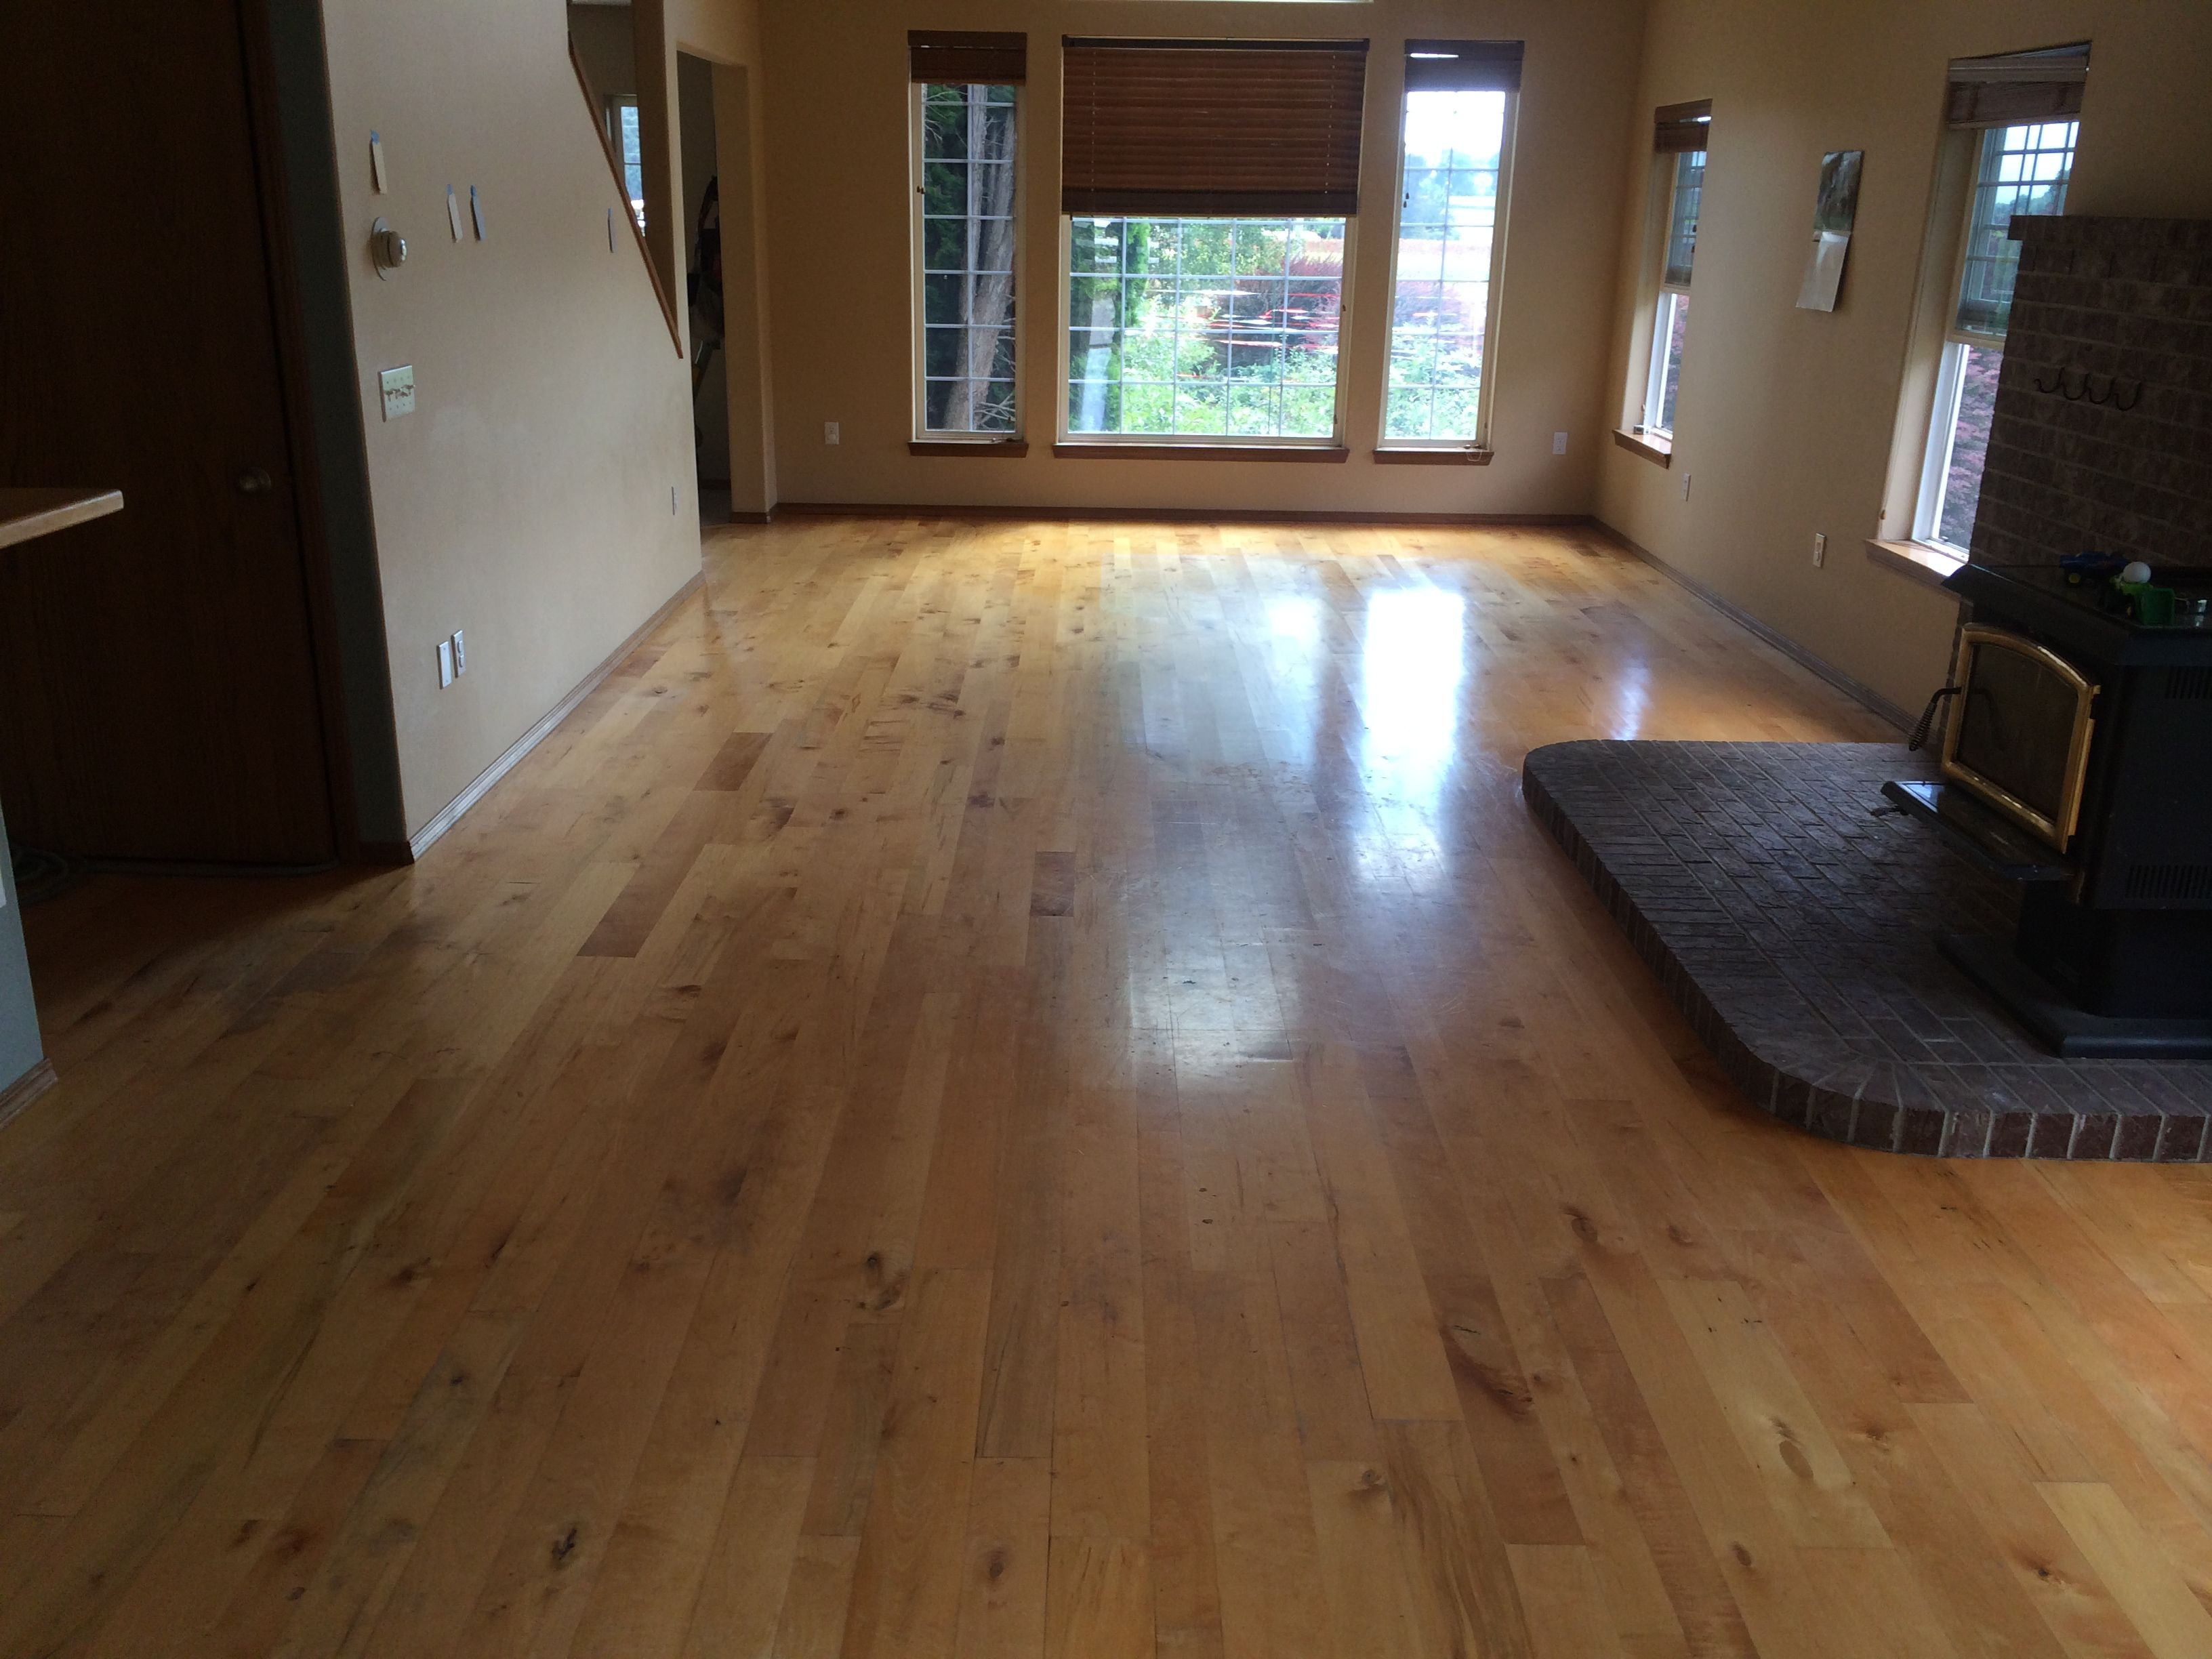 hardwood floor refinishing portland of how much to refinish wood floors refinish done in portland oregon pertaining to how much to refinish wood floors refinish done in portland oregon floor is made from maple